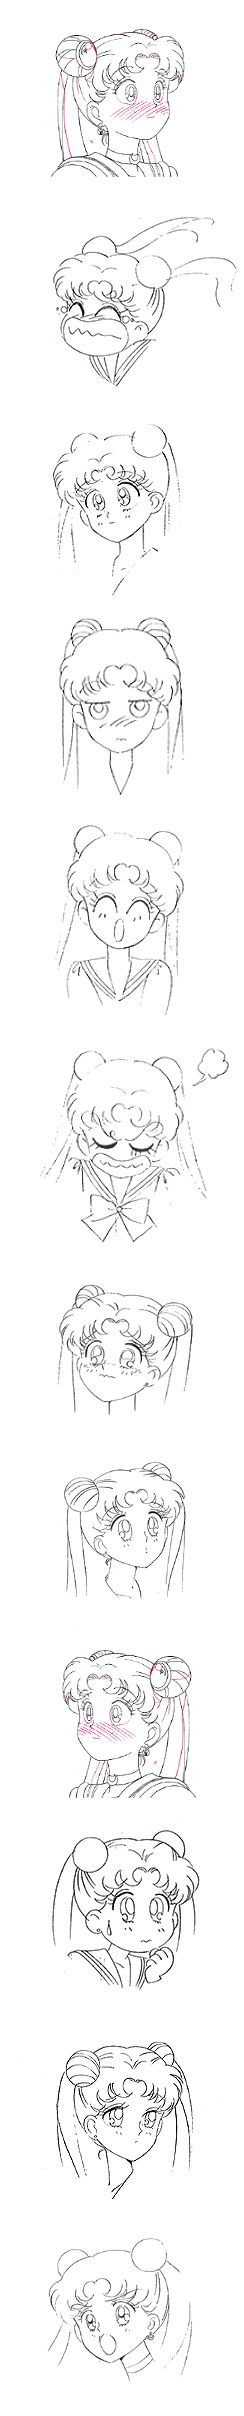 """""""Usagi Tsukino (Sailor Moon)"""" by 武内 直子 Naoko Takeuchi*   © Toei Animation*  • Blog/Website   (www.toei-anim.co.jp)  ★    CHARACTER DESIGN REFERENCES™ (https://www.facebook.com/CharacterDesignReferences & https://www.pinterest.com/characterdesigh) • Love Character Design? Join the #CDChallenge (link→ https://www.facebook.com/groups/CharacterDesignChallenge) Share your unique vision of a theme, promote your art in a community of over 50.000 artists!    ★"""